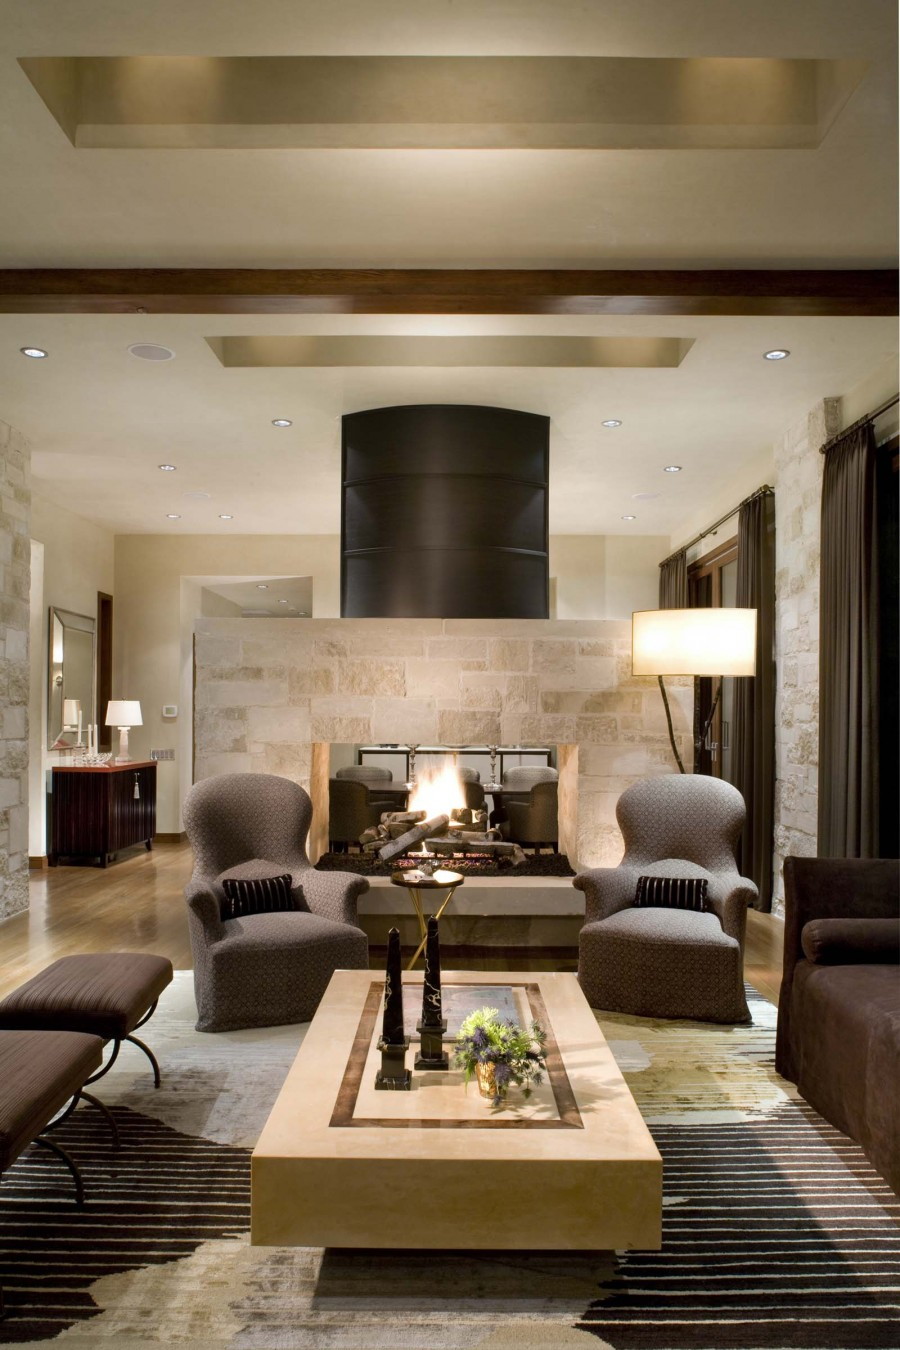 16 fabulous earth tones living room designs decoholic Design ideas for living room